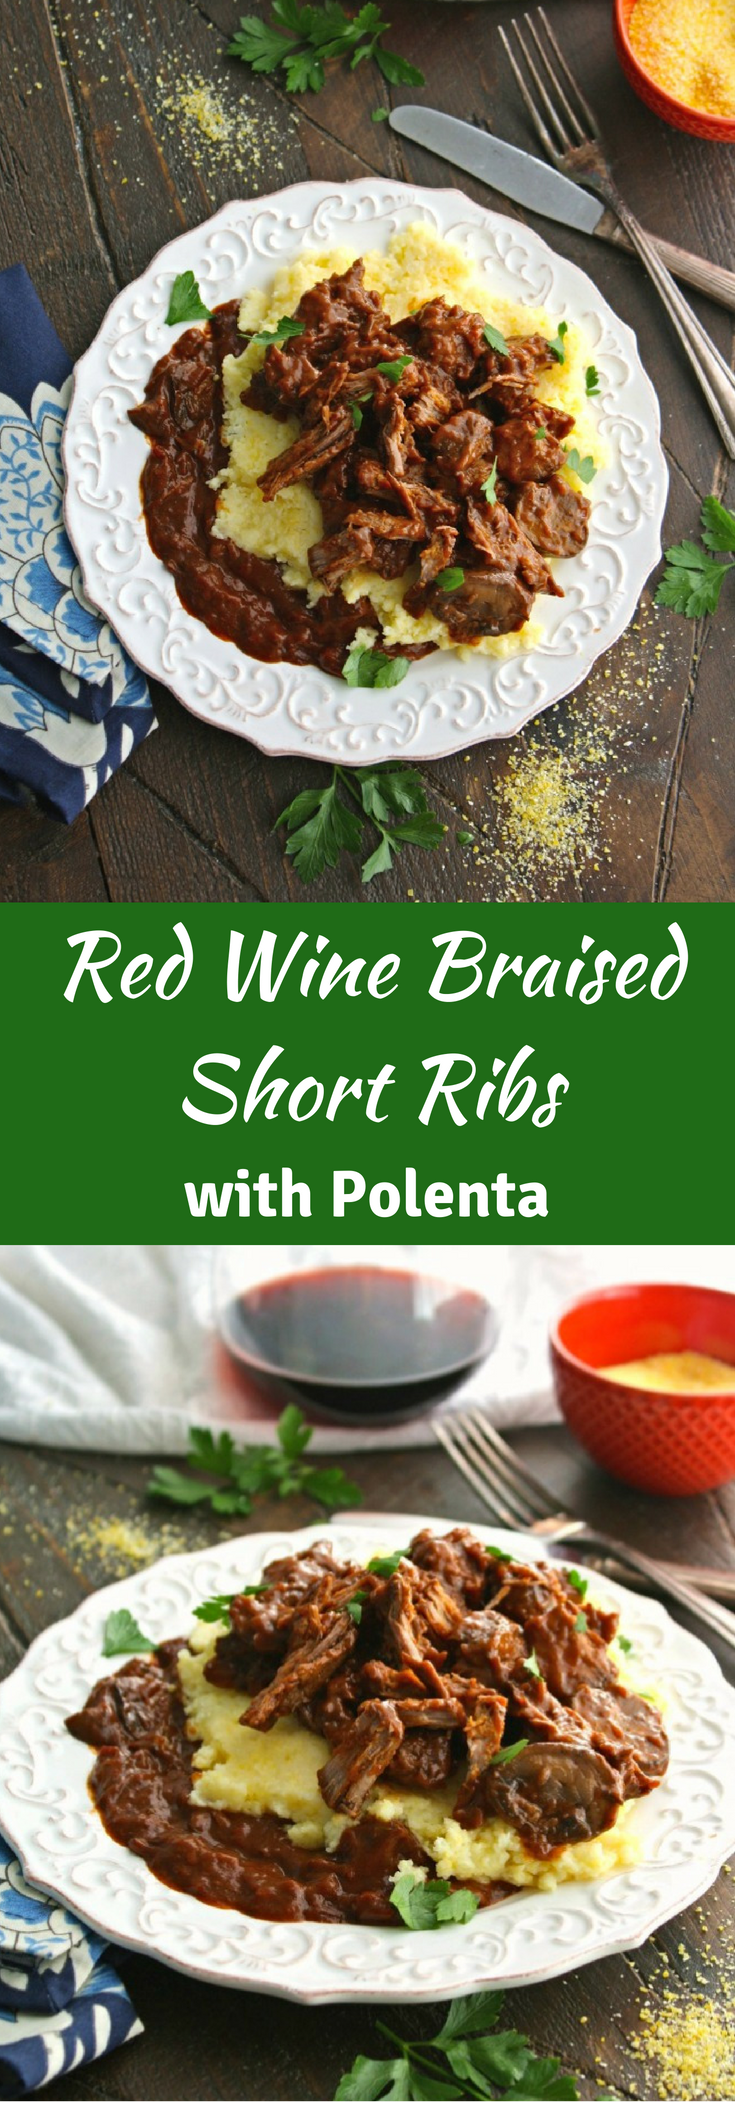 Red Wine Braised Short Ribs with Polenta makes a great Sunday dinner.